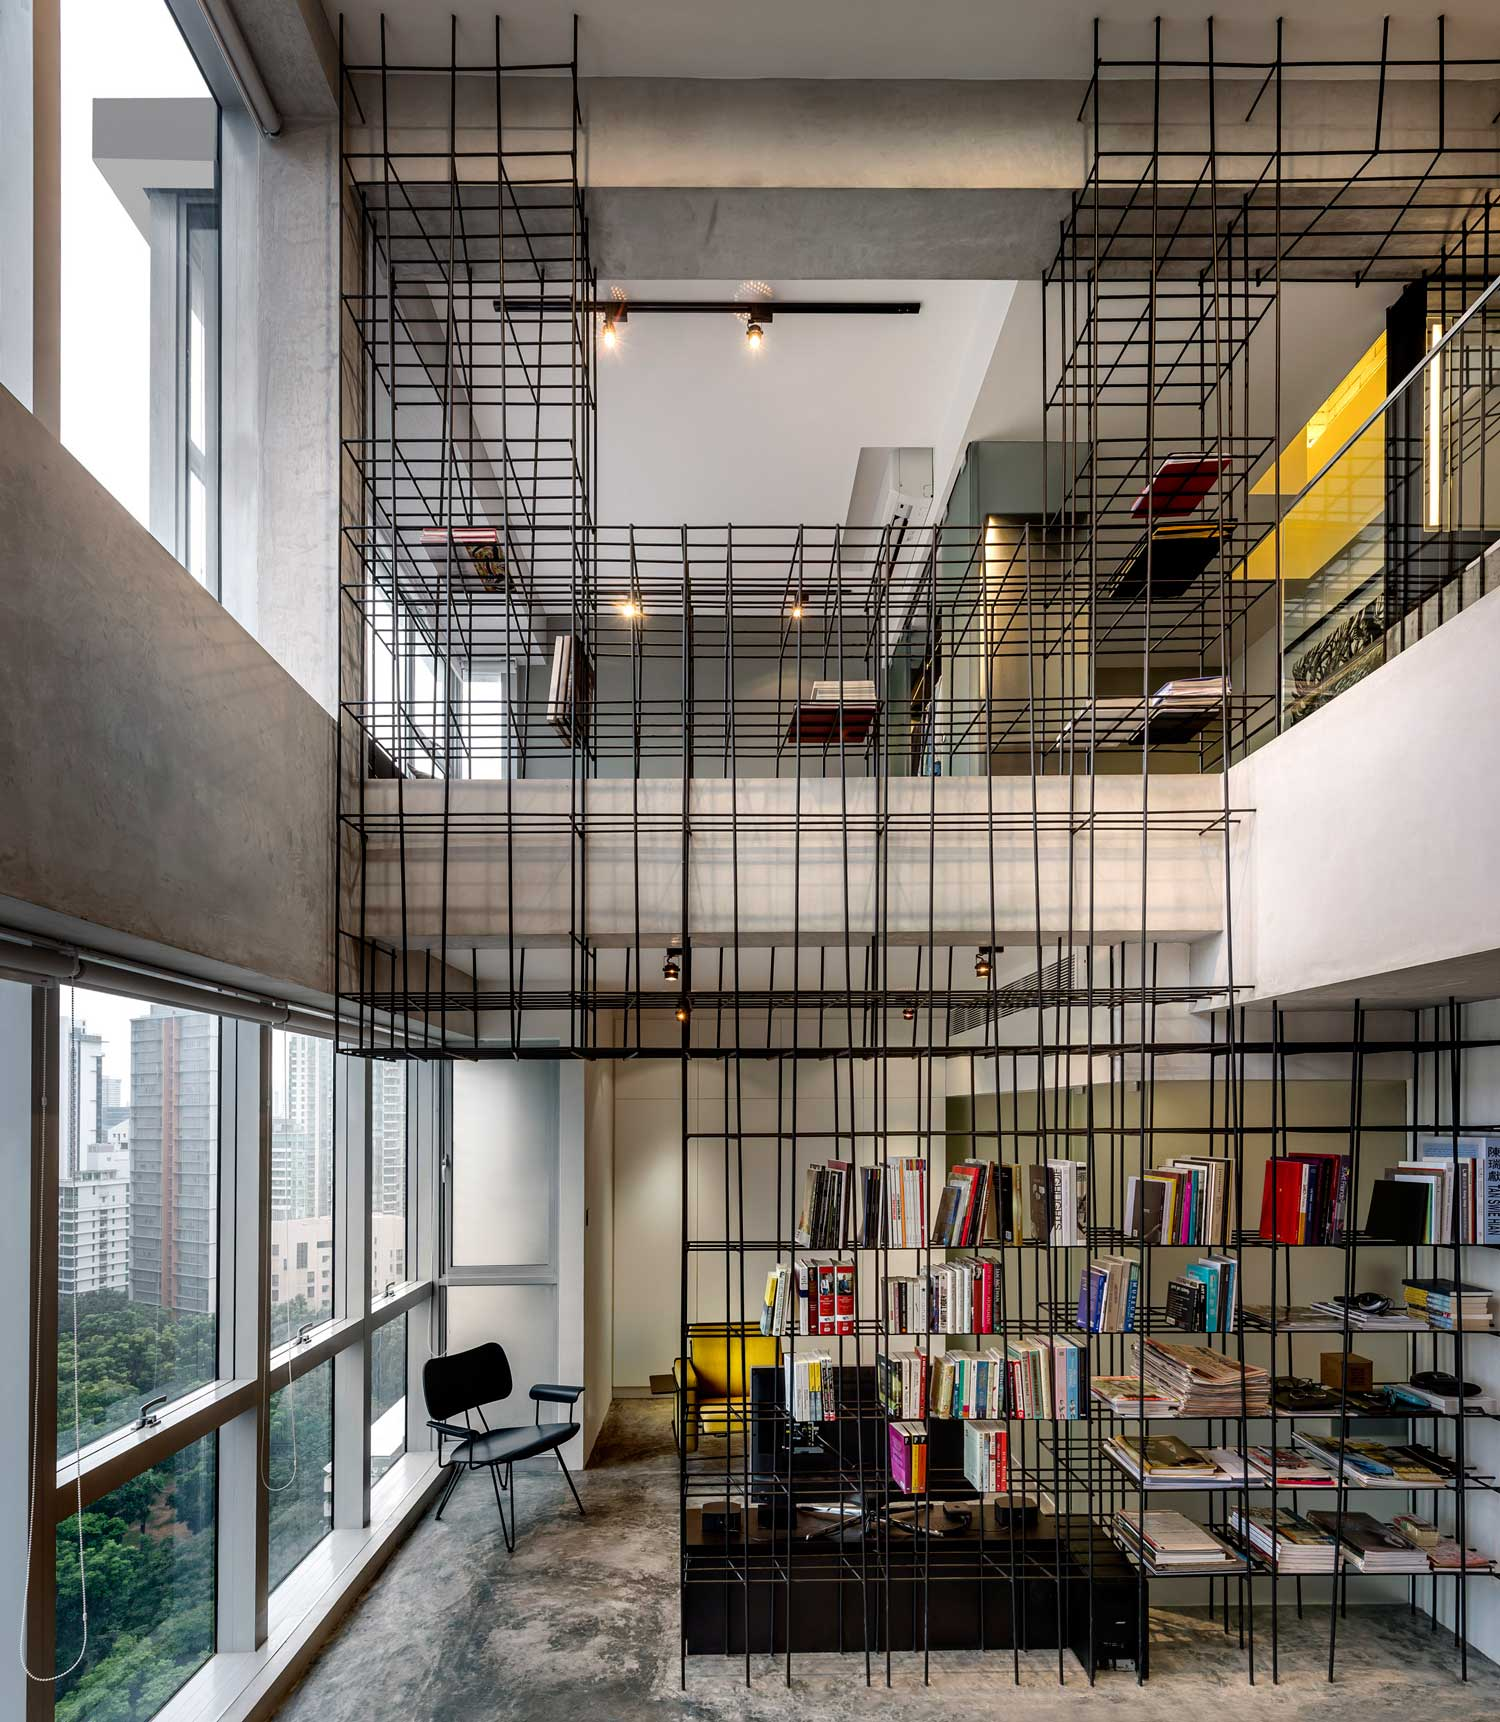 Monoform Living Singapore by Produce Workshop | Yellowtrace